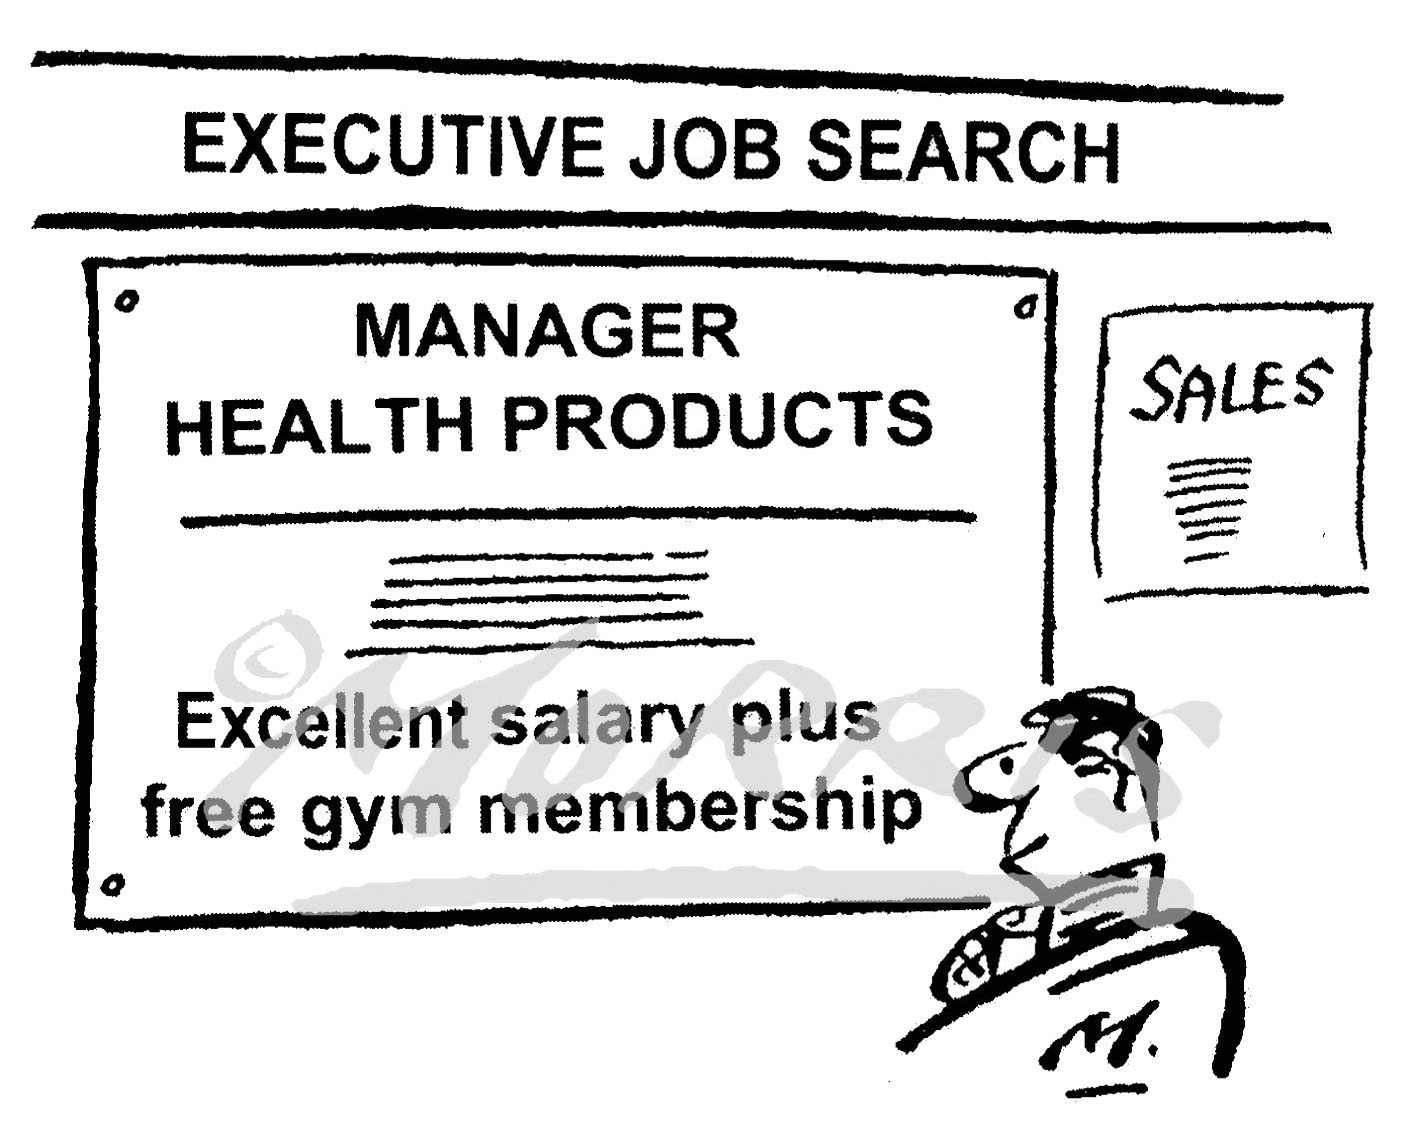 Executive job cartoon, job search cartoon – Ref: 7944bw